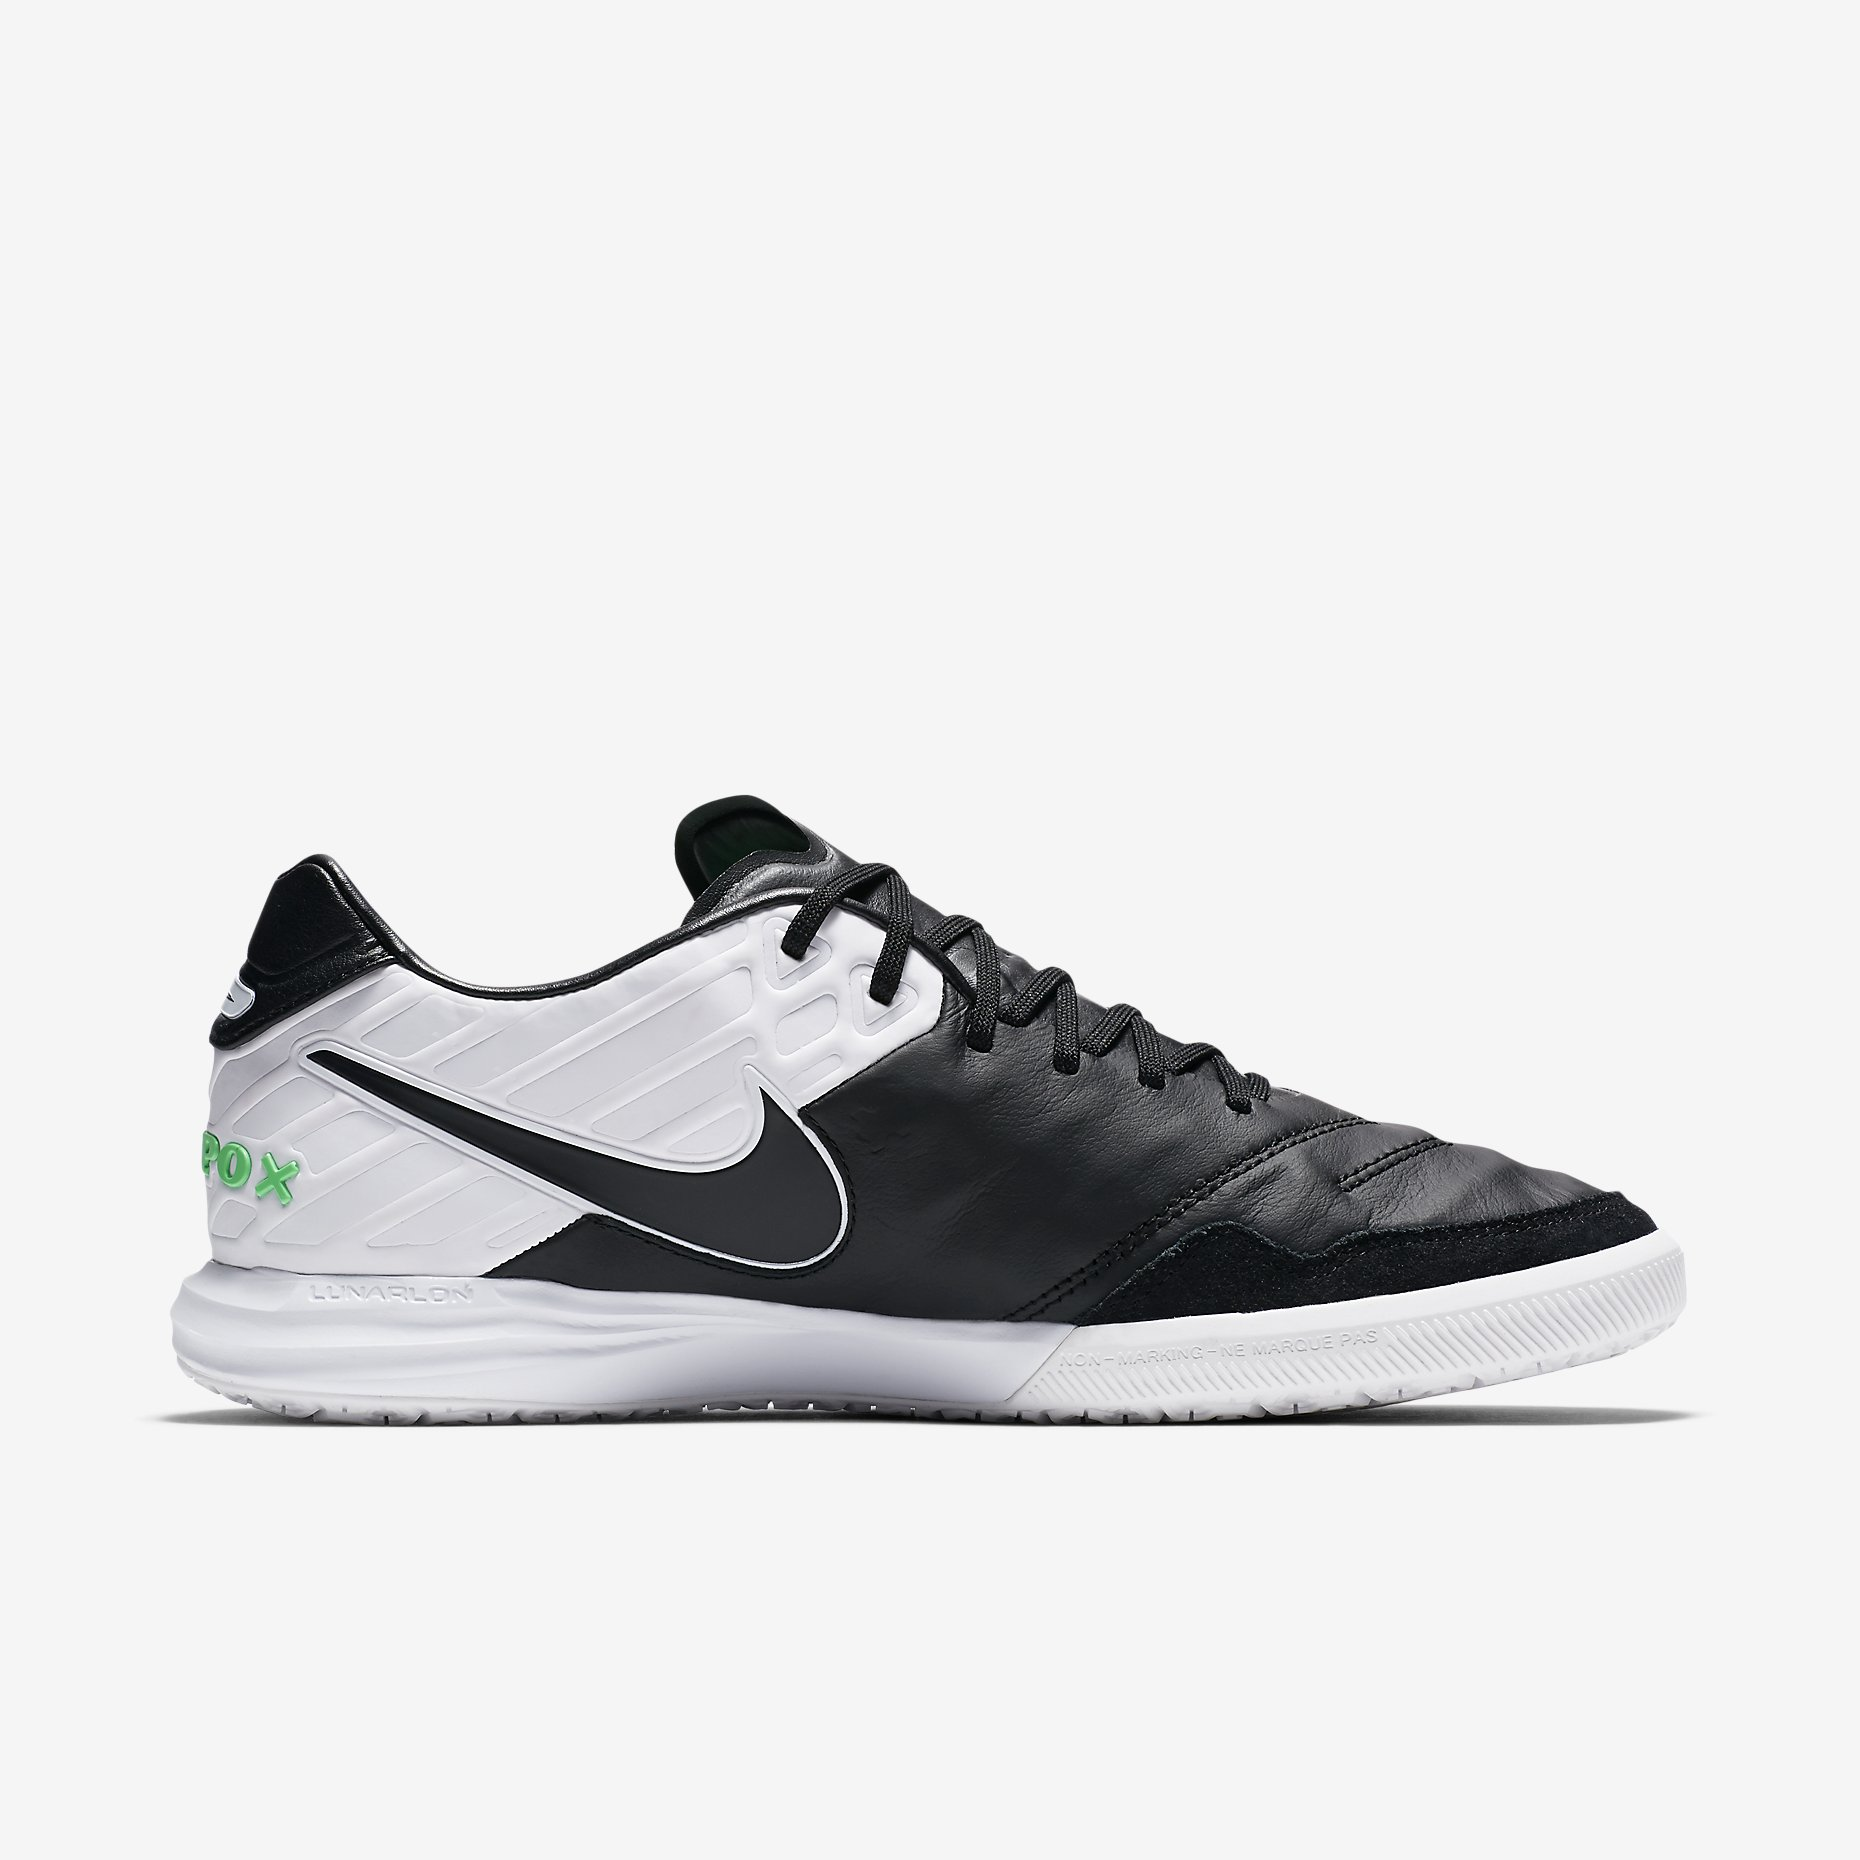 online store 41036 b7c5f ... trainers shoes  nike tiempox proximo ic chasing shadows black electro  green white